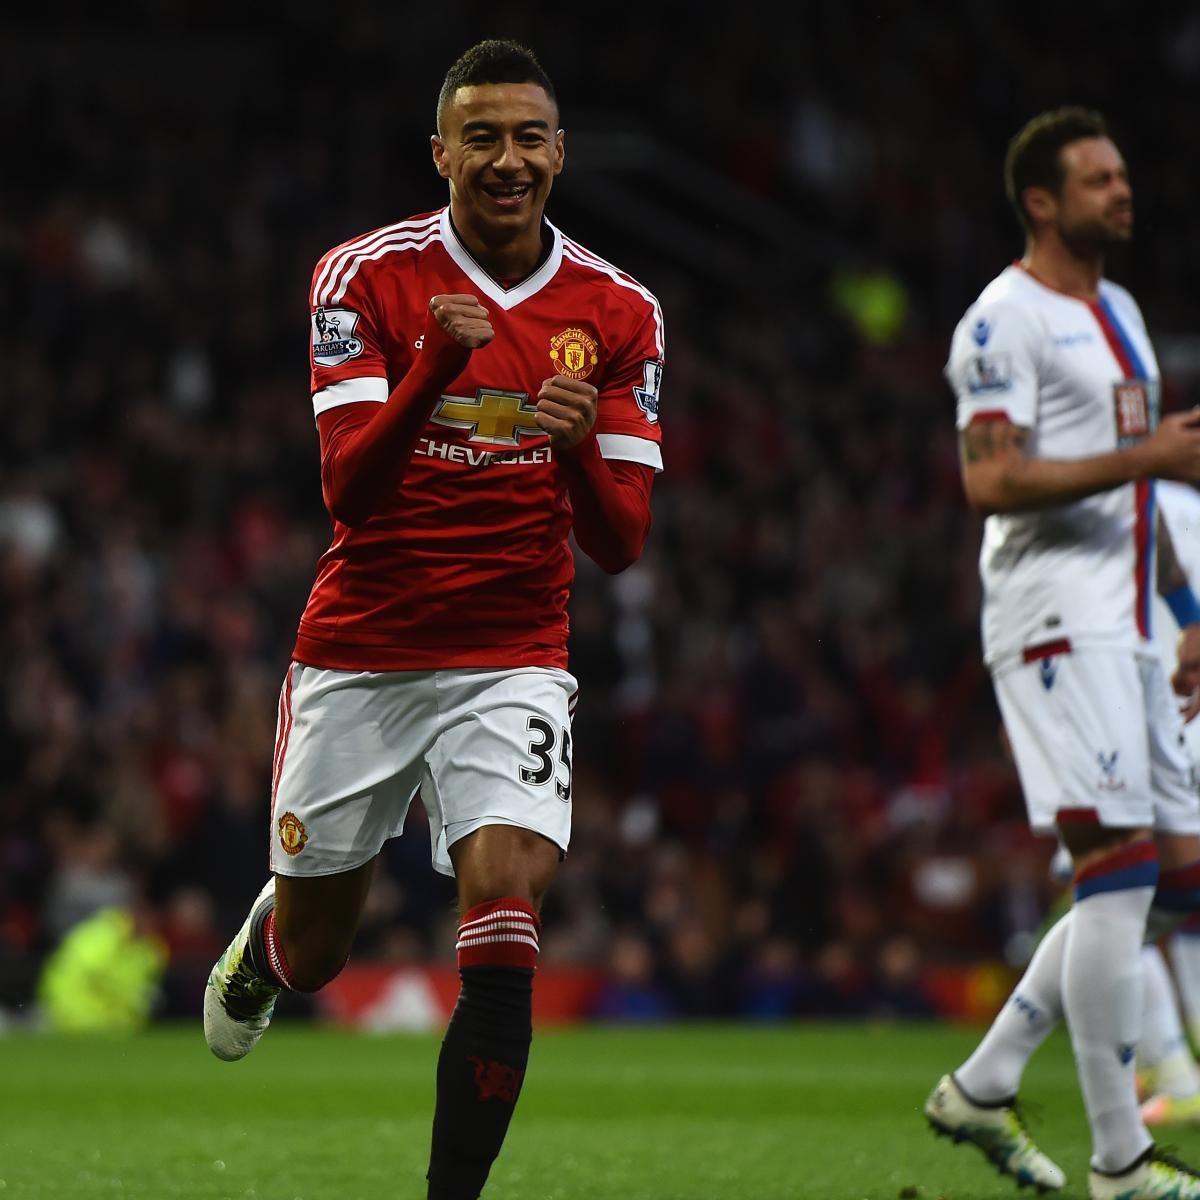 Psg Vs Manchester City Live Score Highlights From: Everton Vs. Manchester United: Live Score, Highlights From